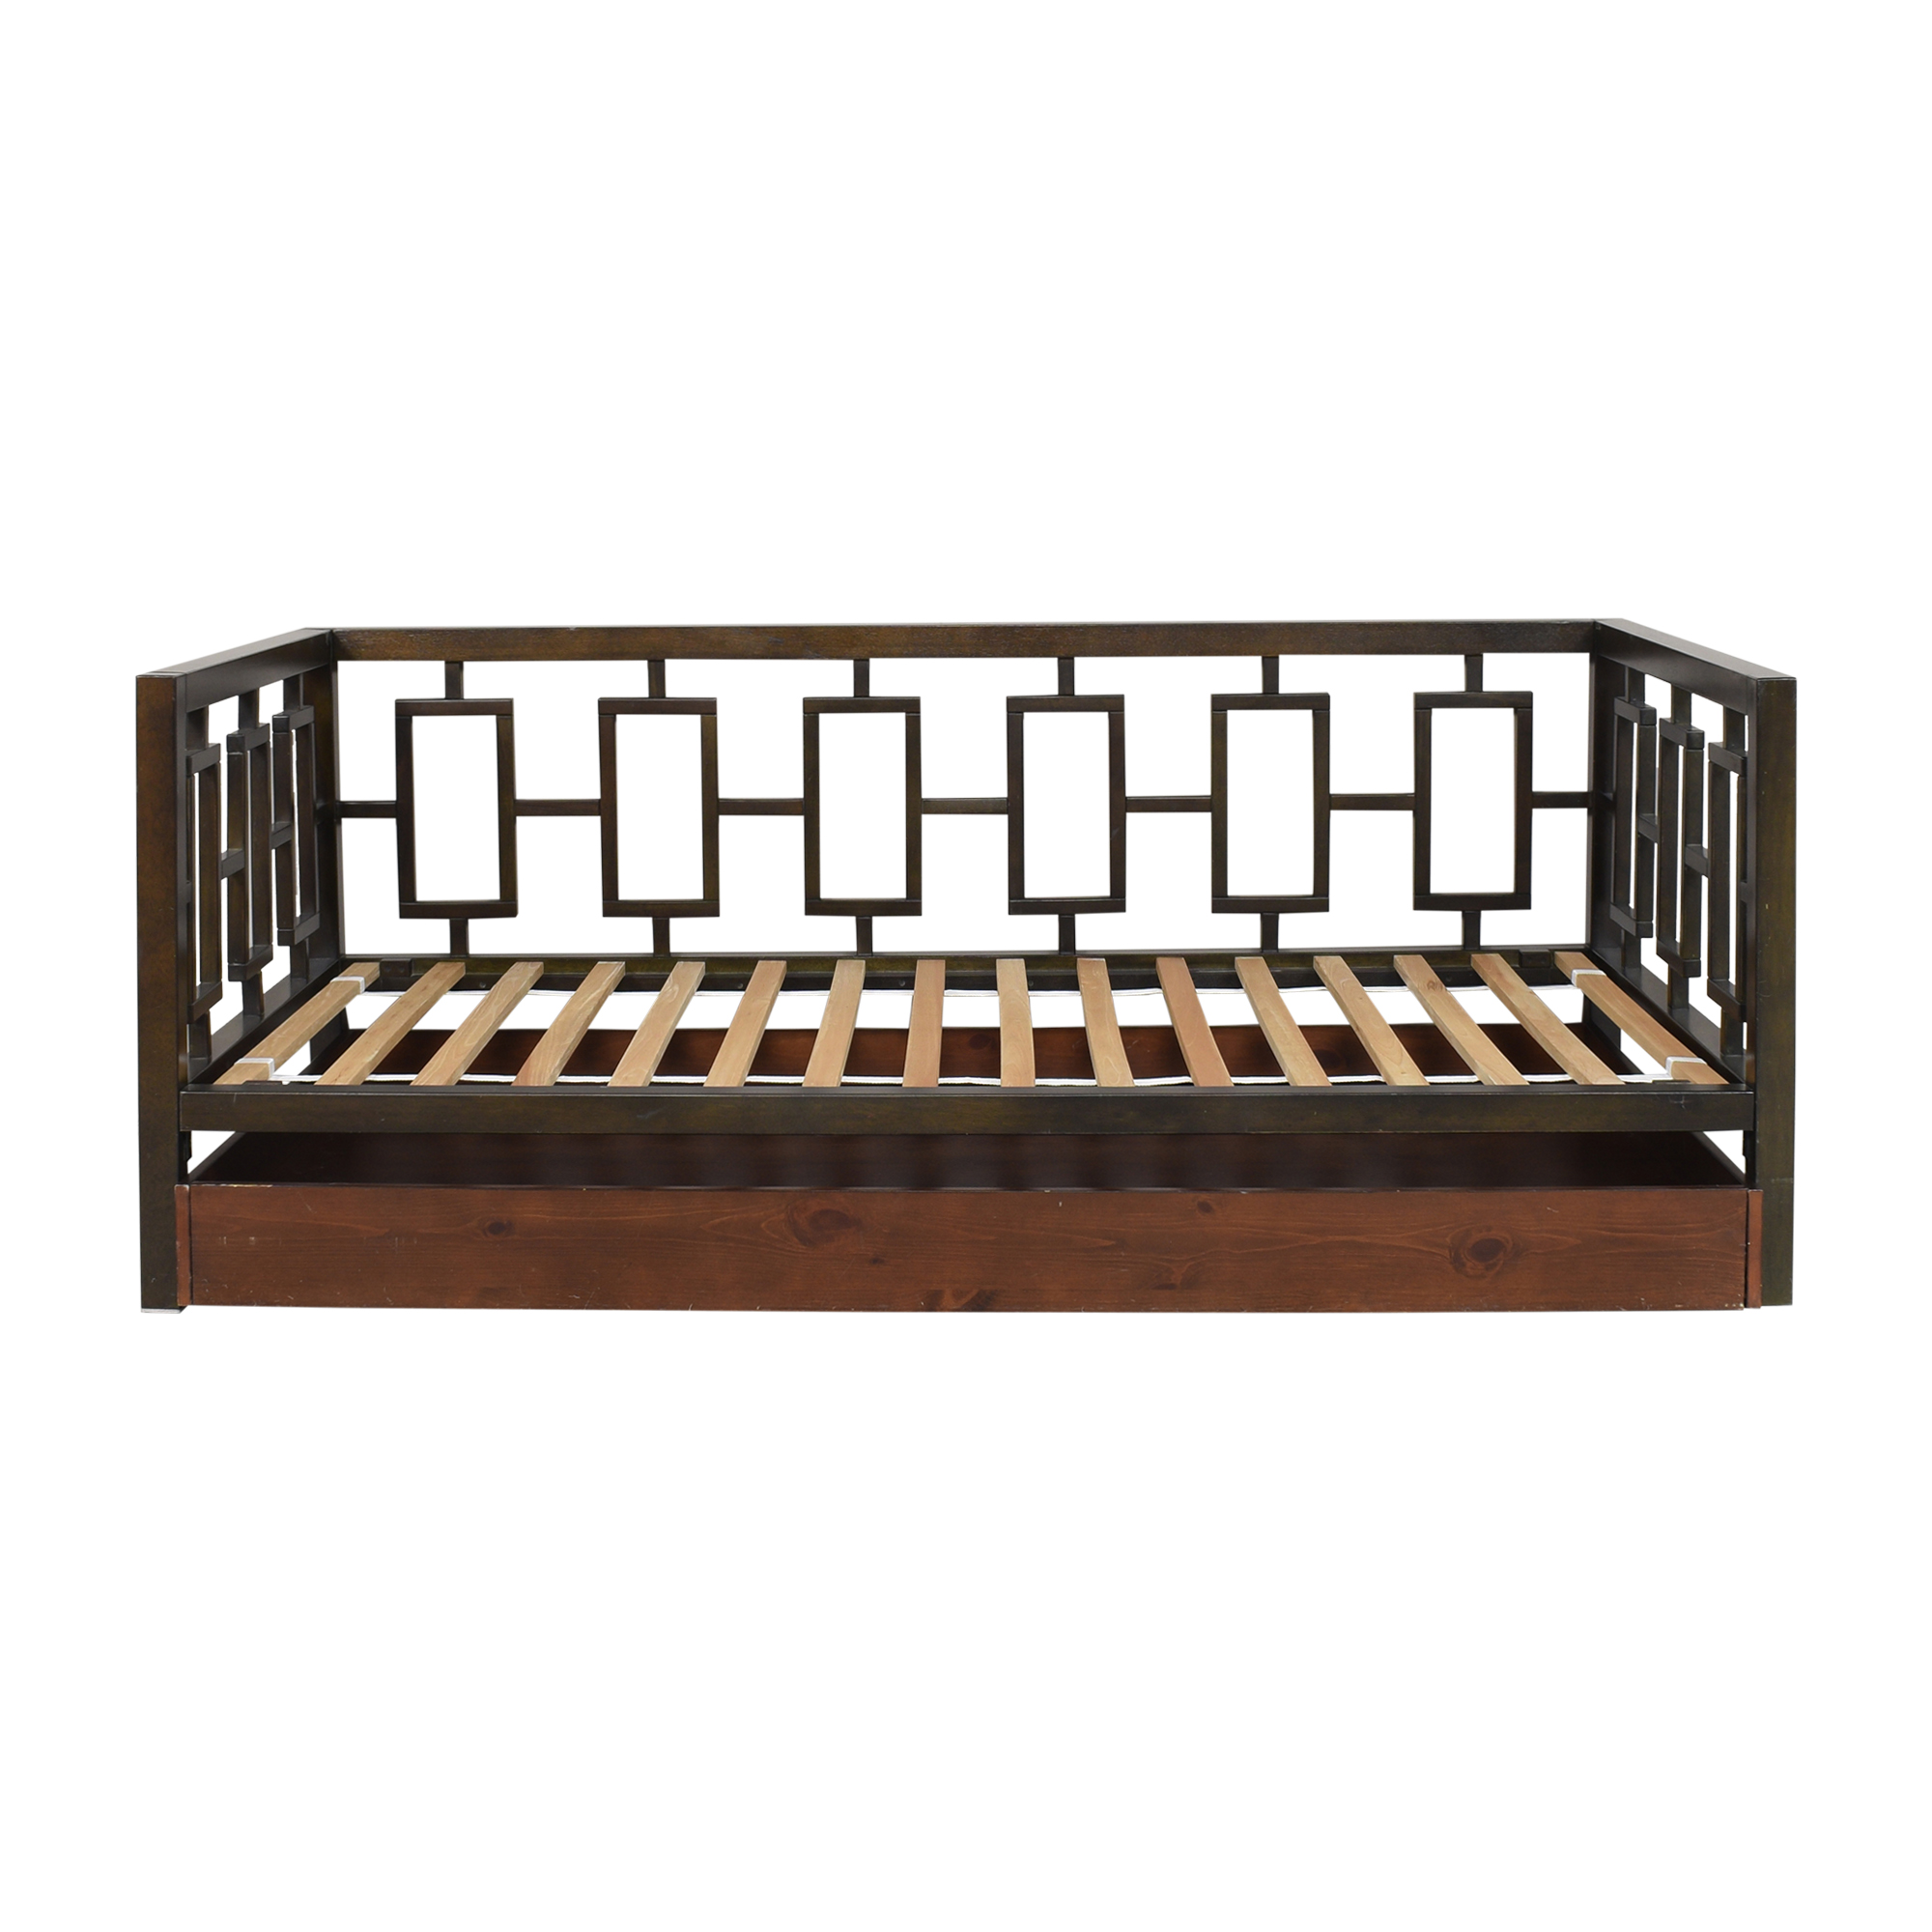 Pottery Barn Teen Pottery Barn Teen Twin Daybed with Trundle coupon